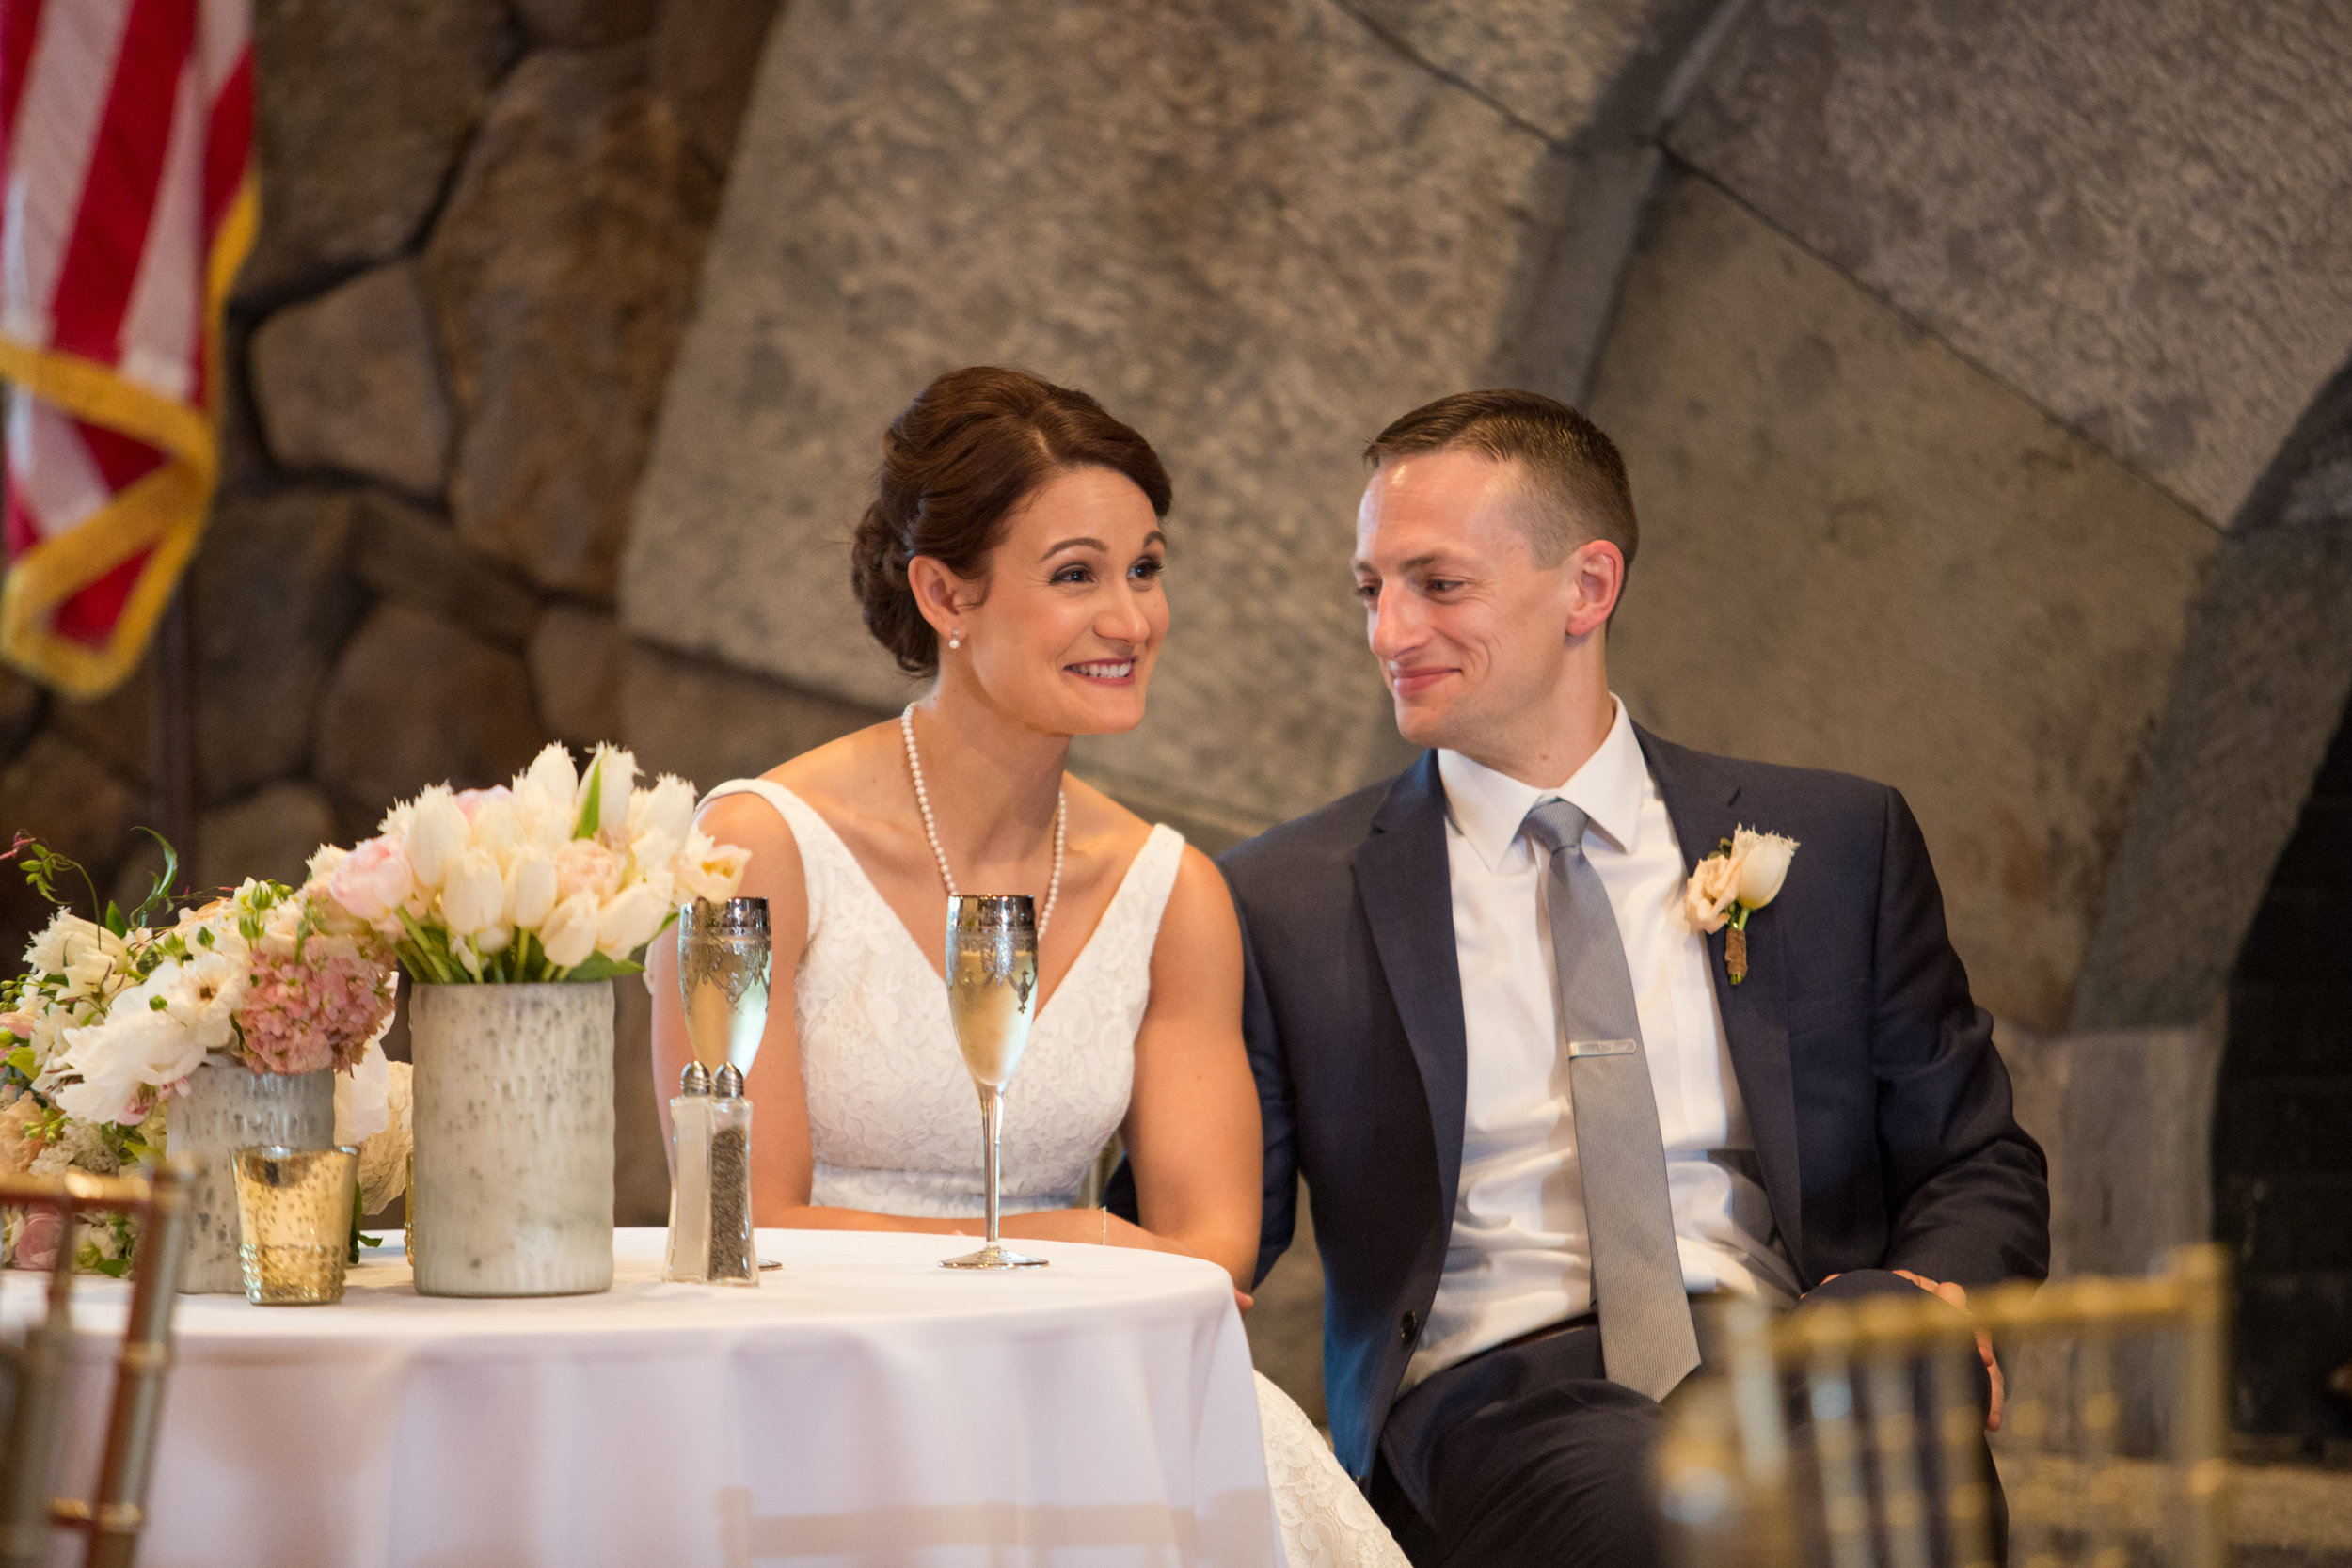 Bethel Woods Center for the Arts Wedding Photos_JDP-161.jpg